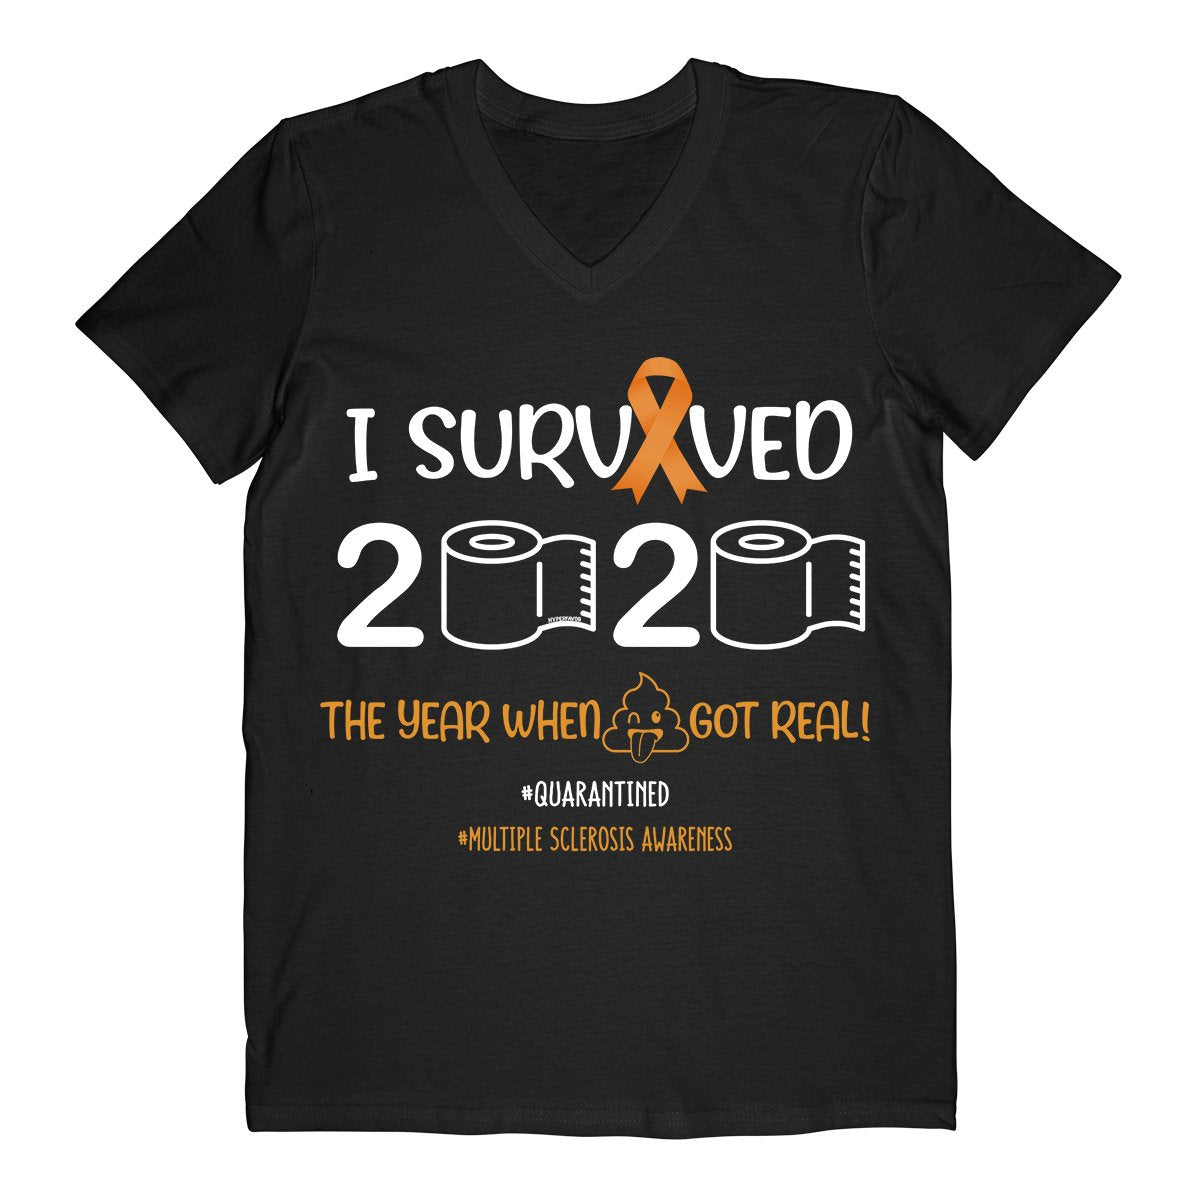 I Survived 2020 MS Men V-neck T-shirt, MS Awareness Month Shirt, Multiple Sclerosis Awareness Gifts